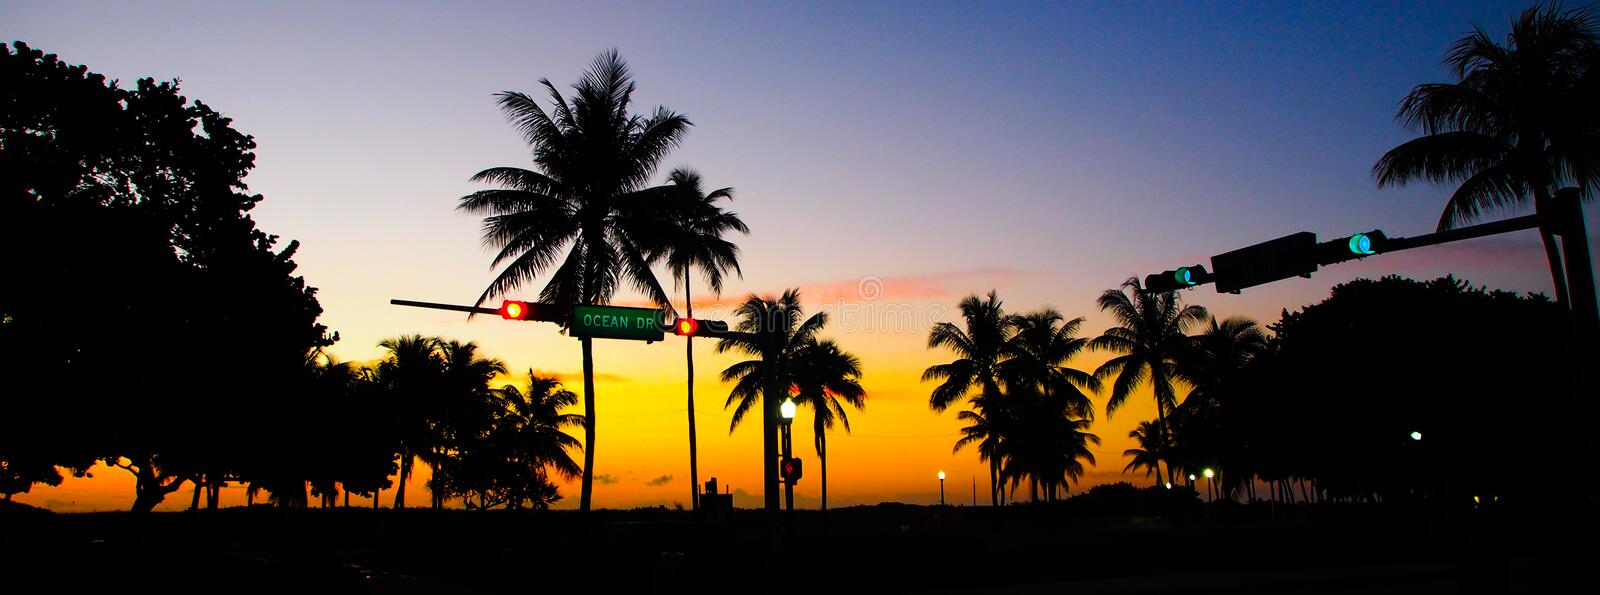 South beach sunset royalty free stock photography